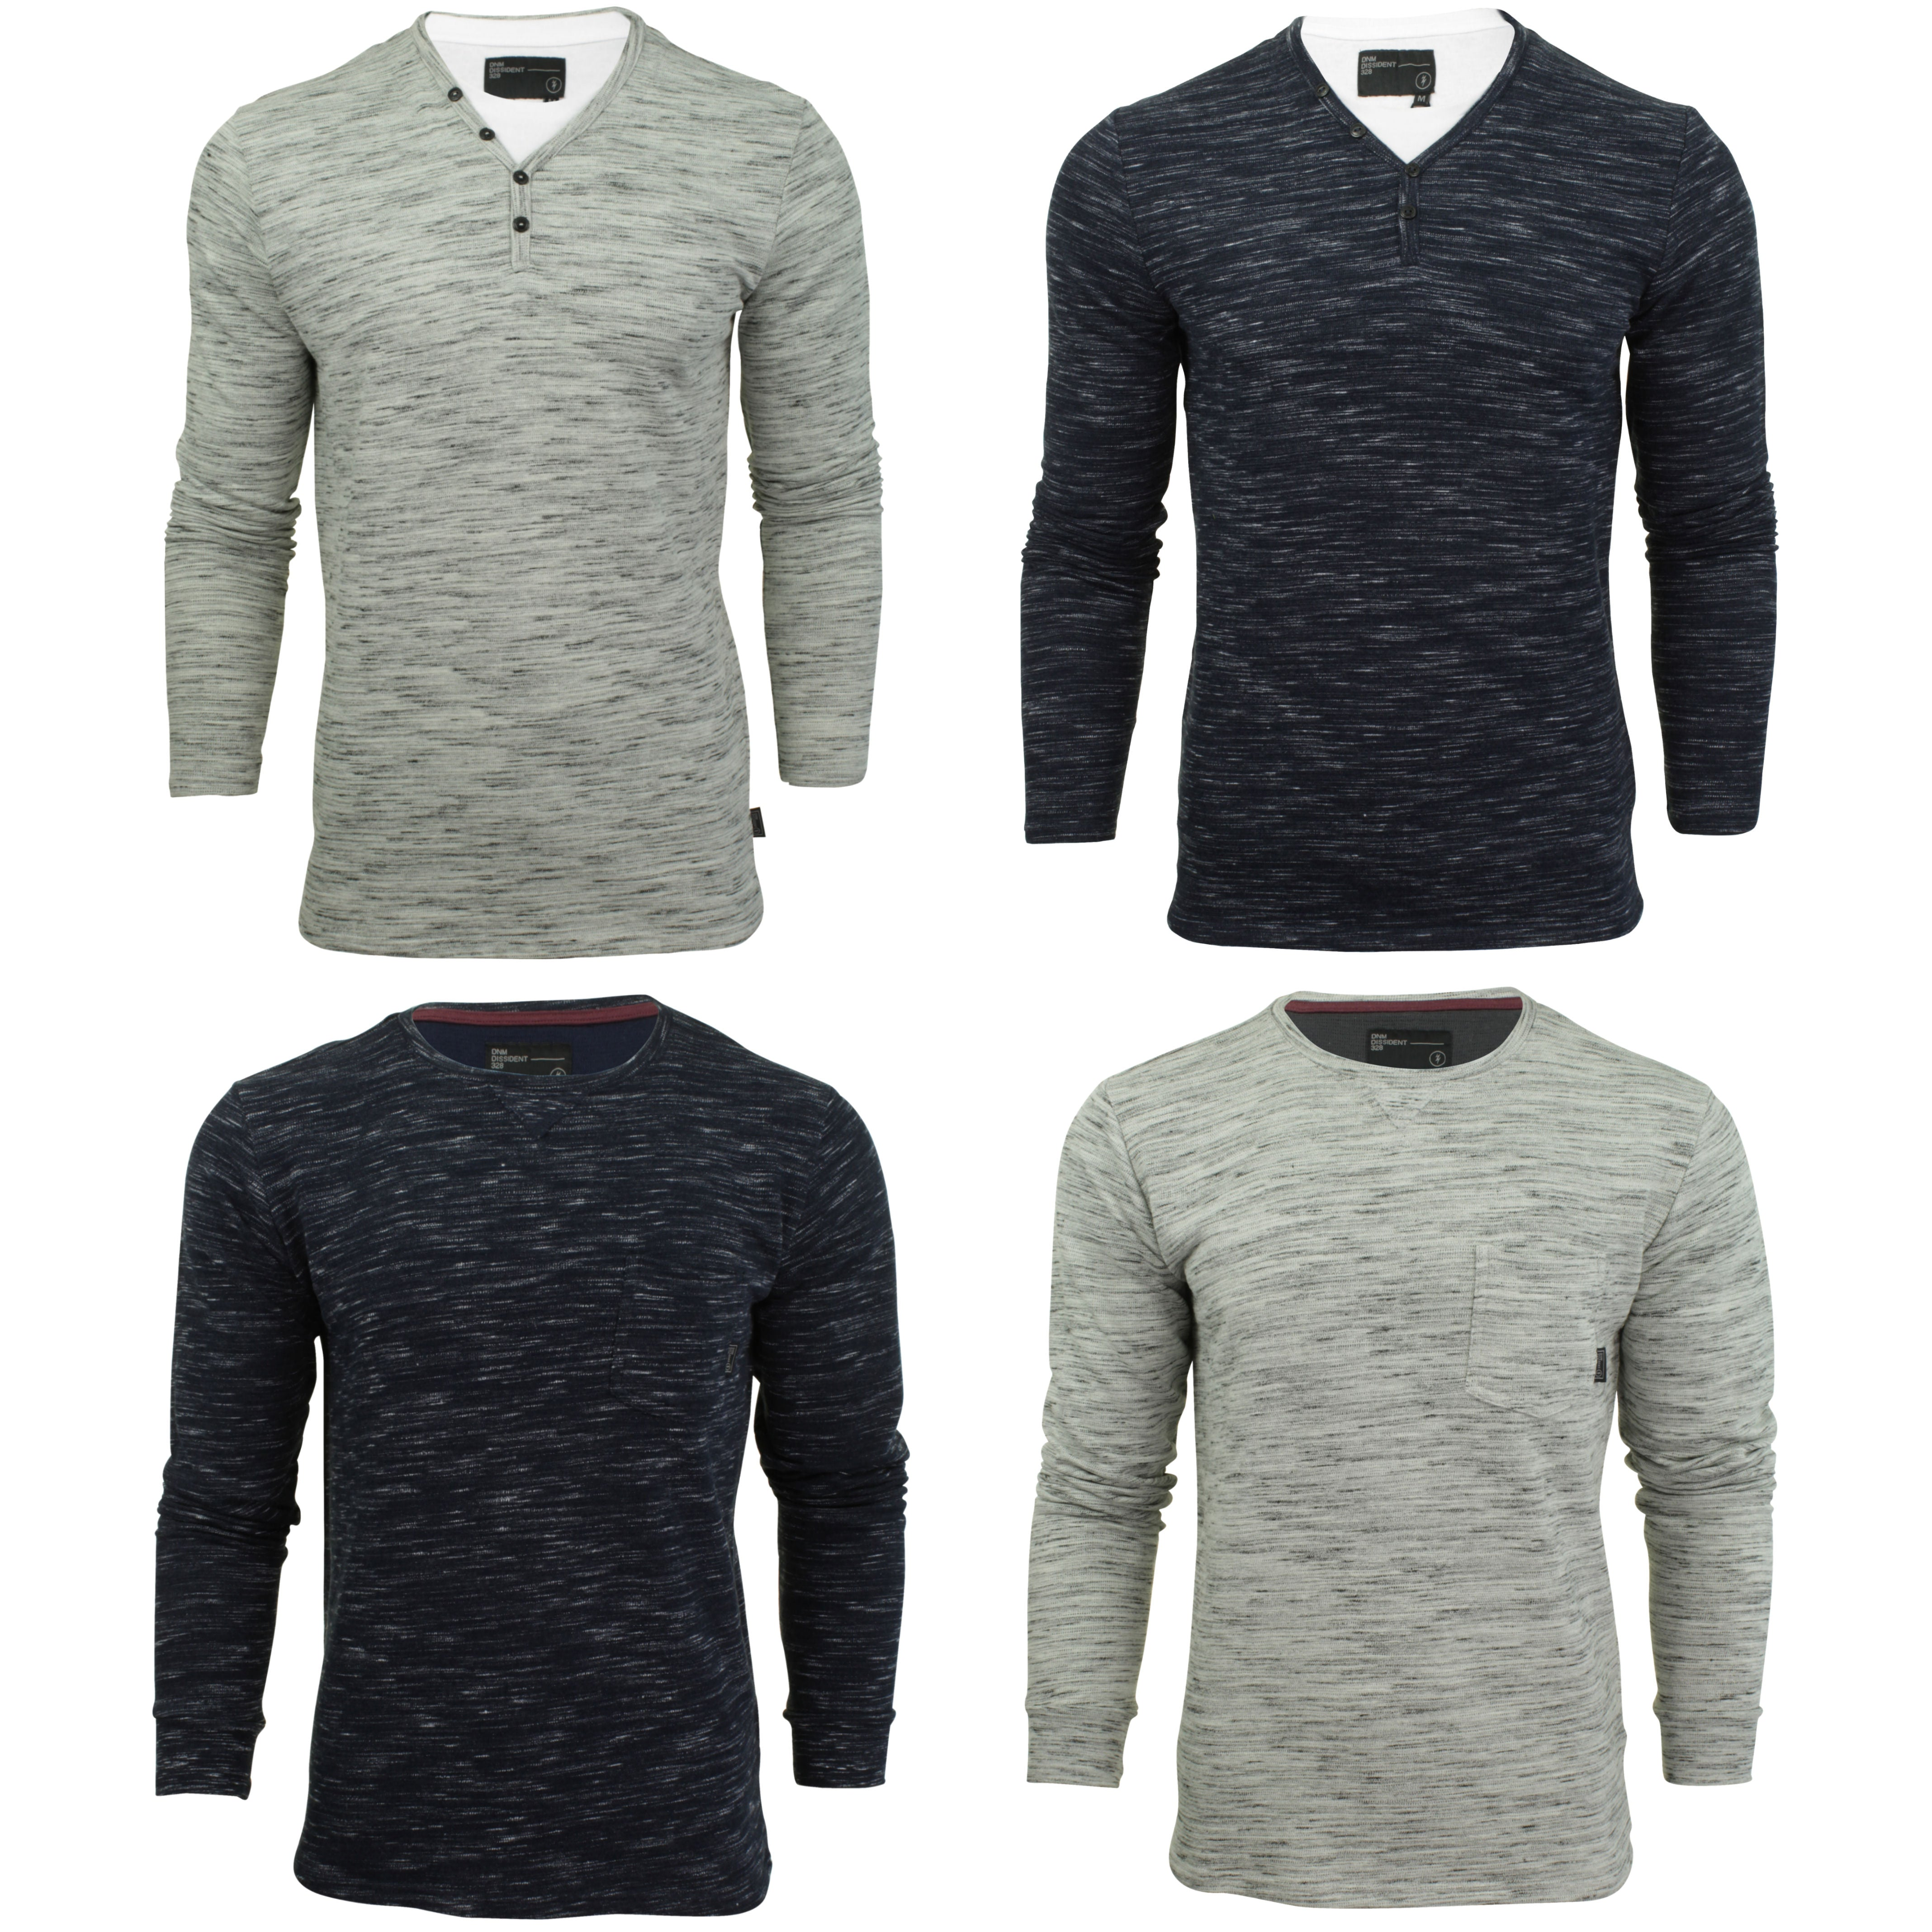 Mens Long Sleeved T-Shirt by Dissident 'Forsey' Crew Neck-Main Image